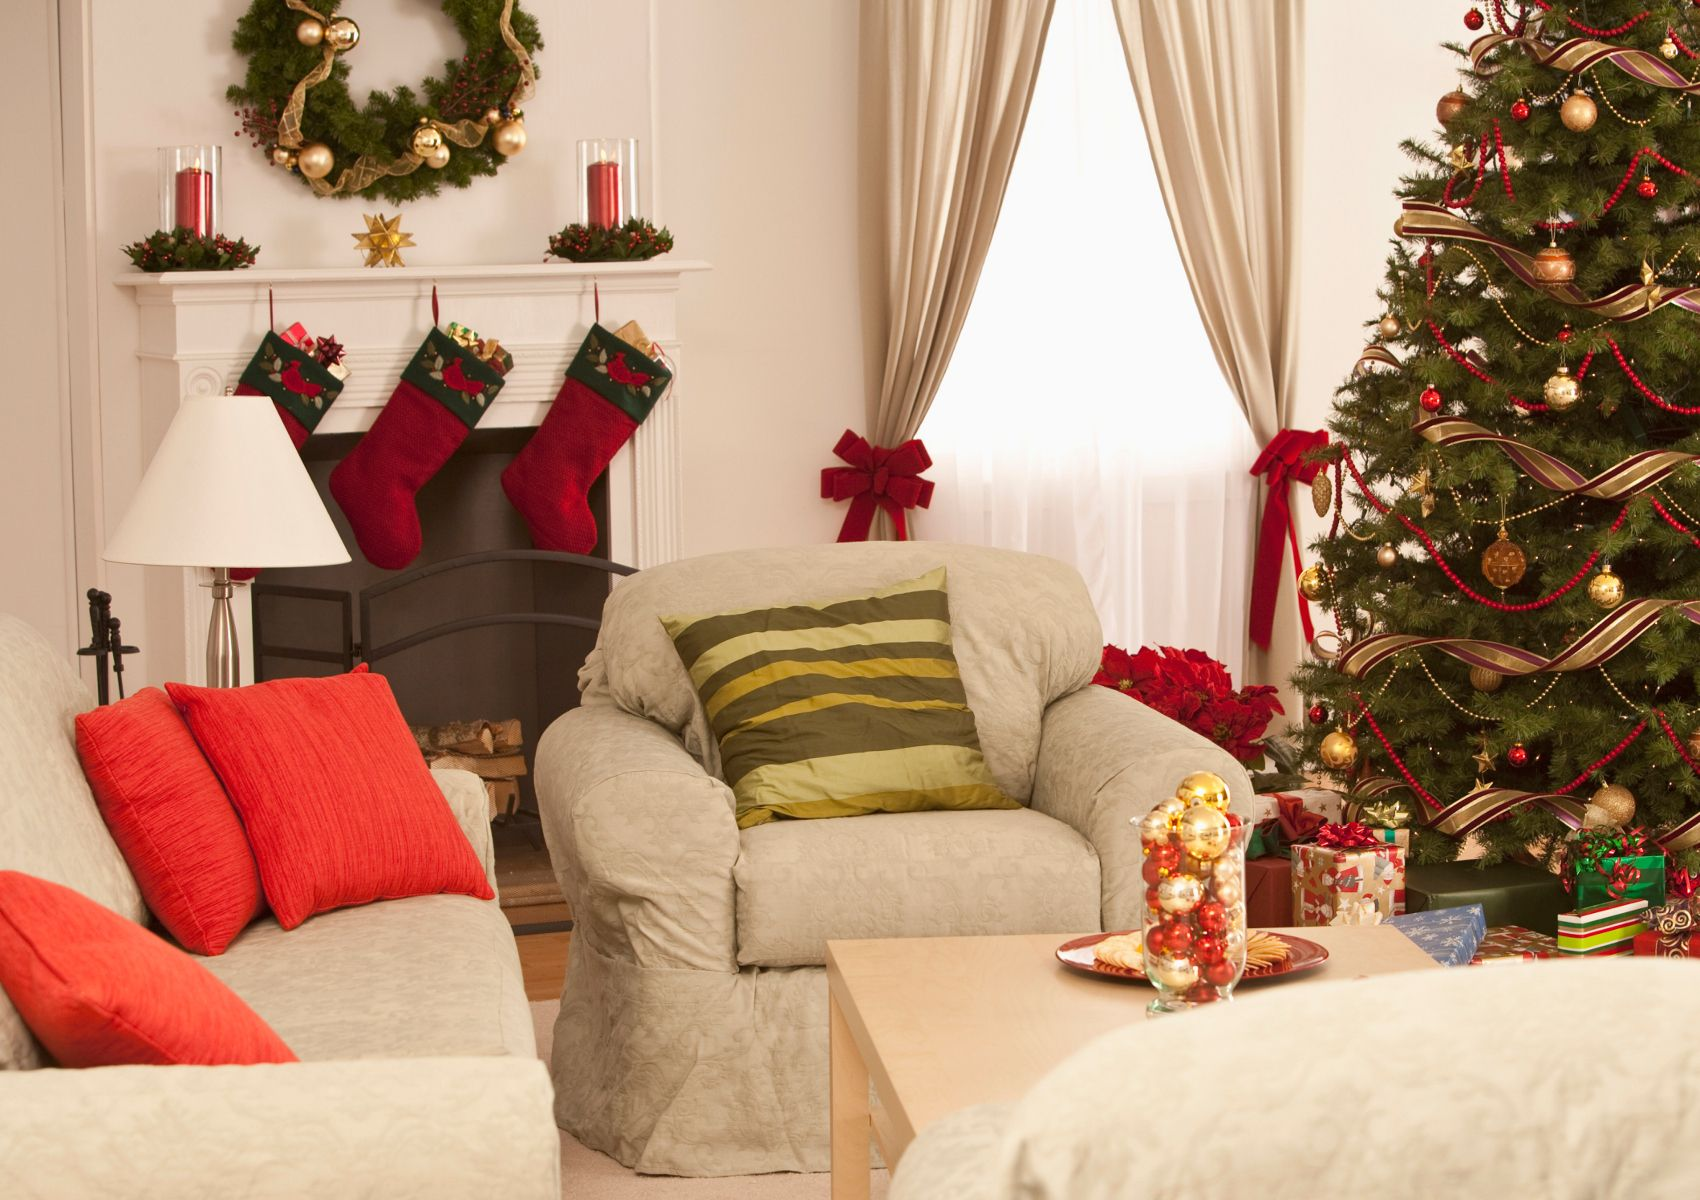 decoraci n navide a para el hogar christmas pinterest